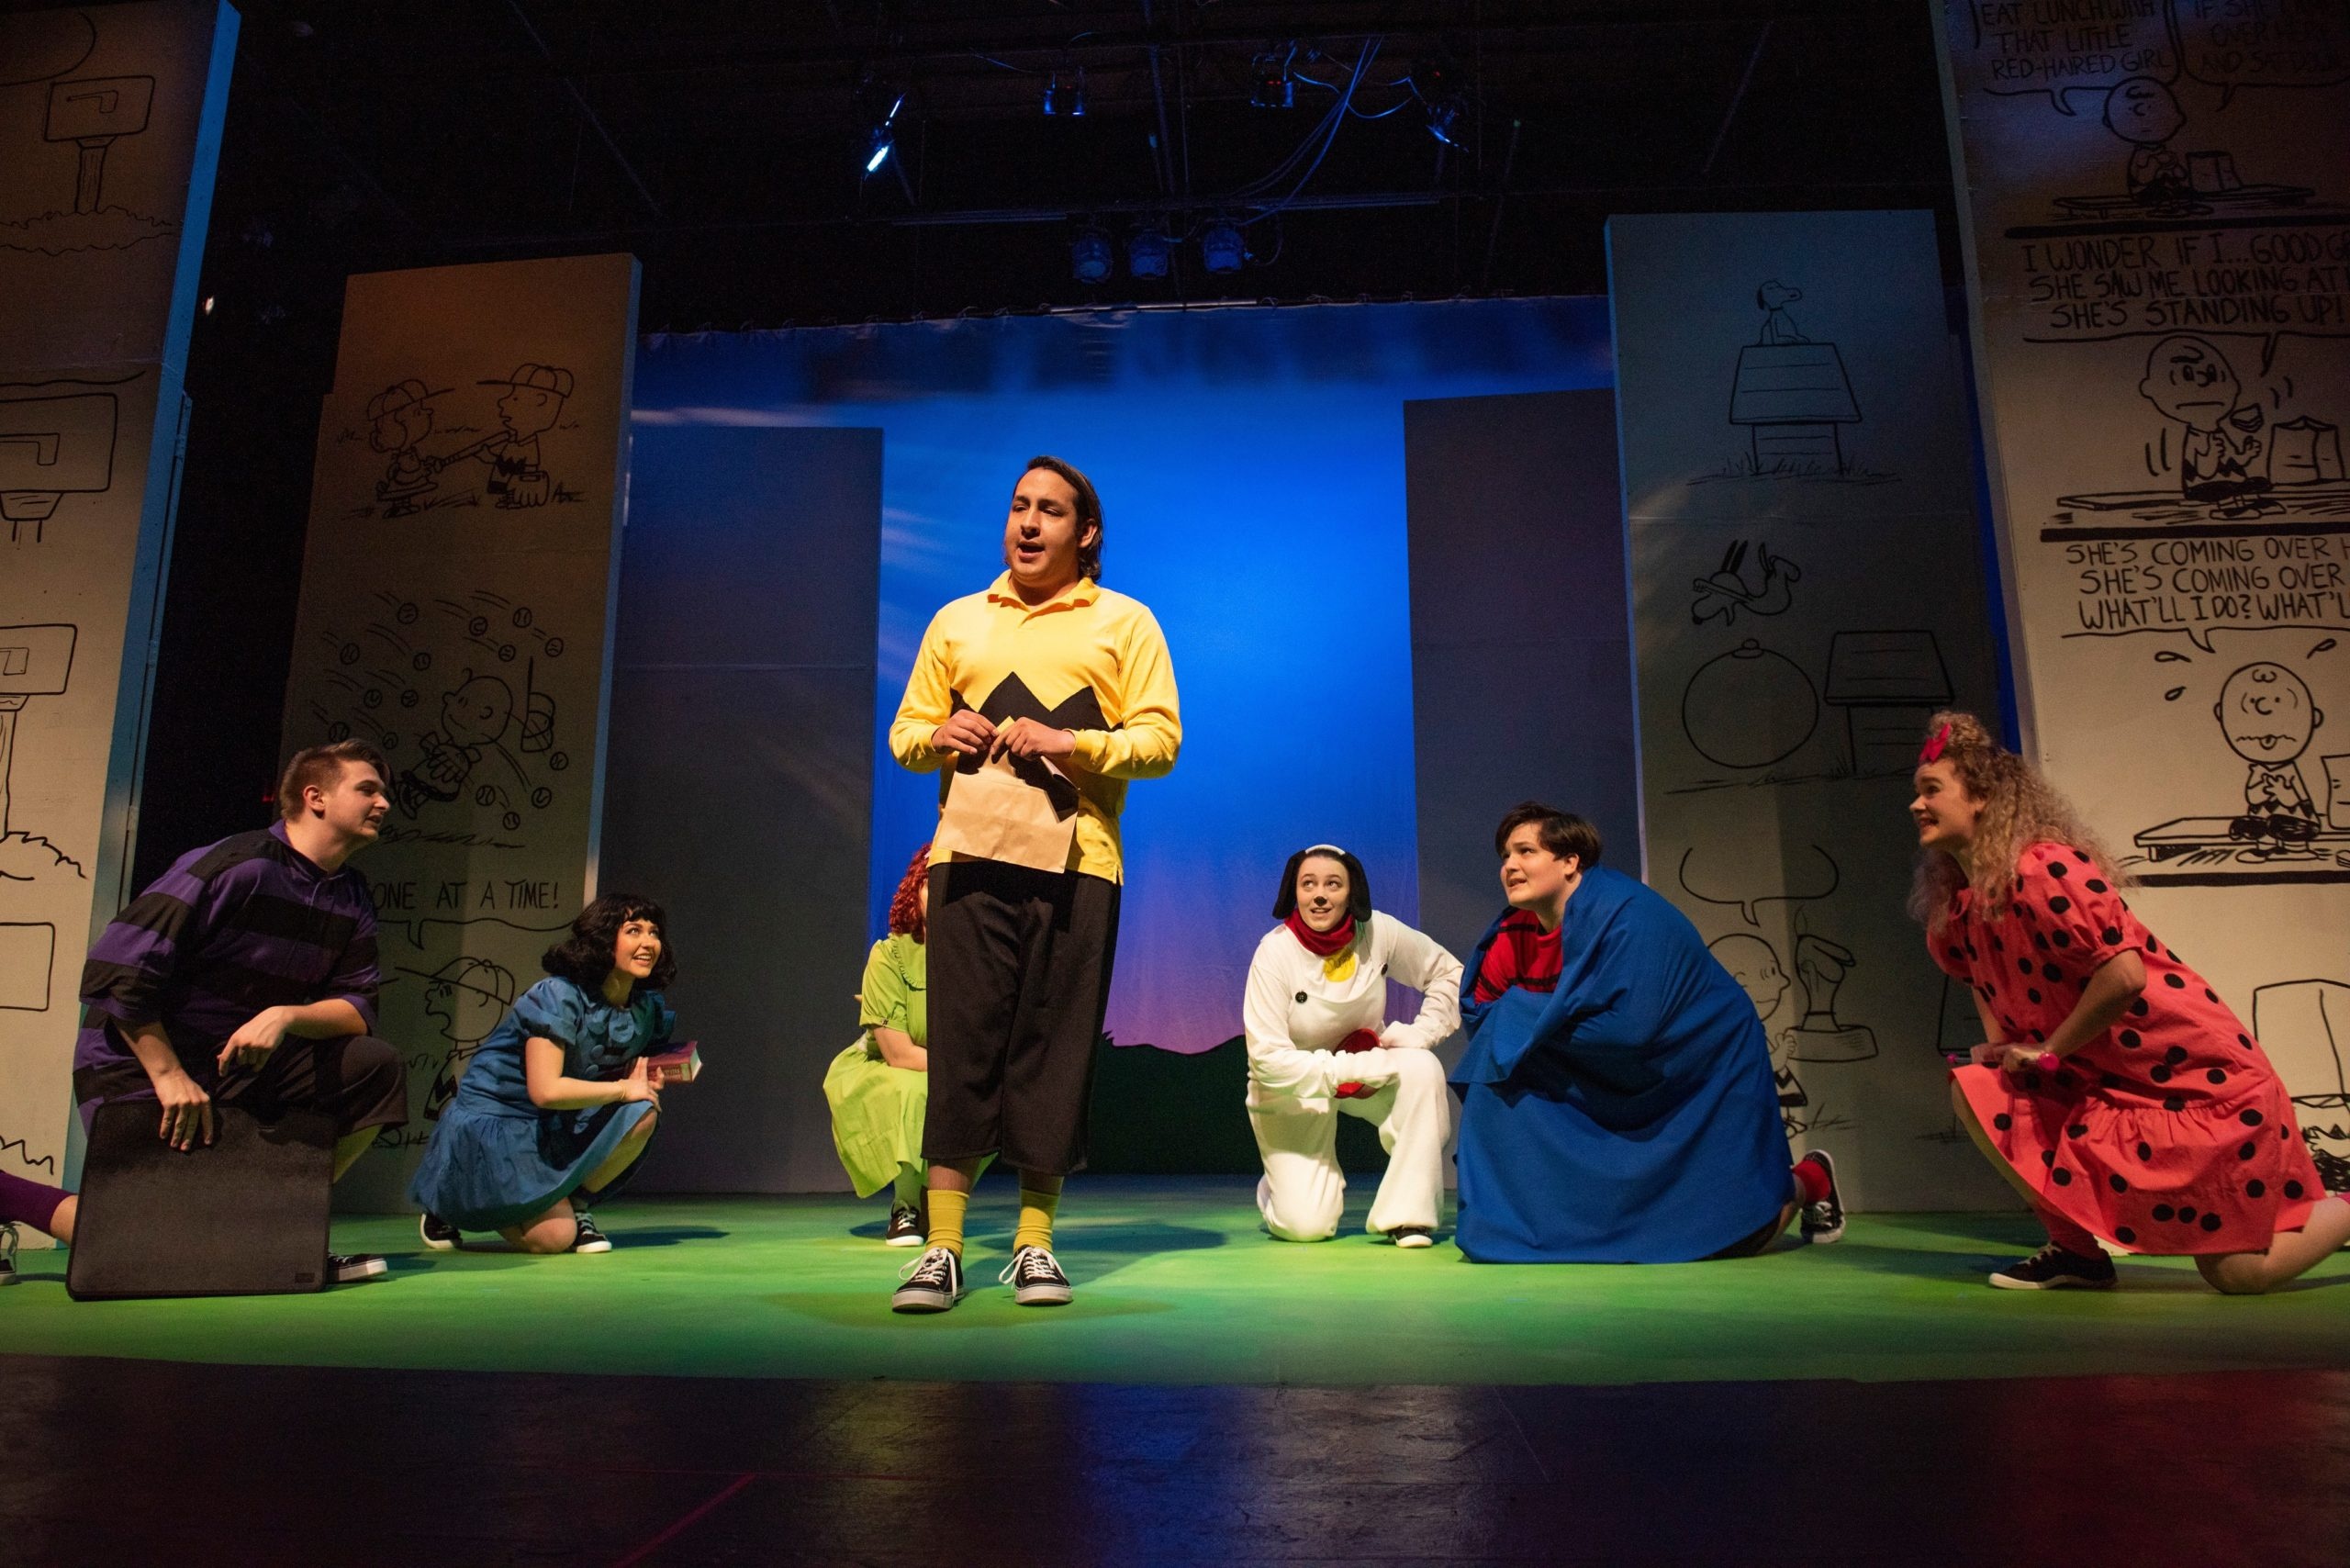 actor playing the Charlie Brown character on stage with other actors looking on